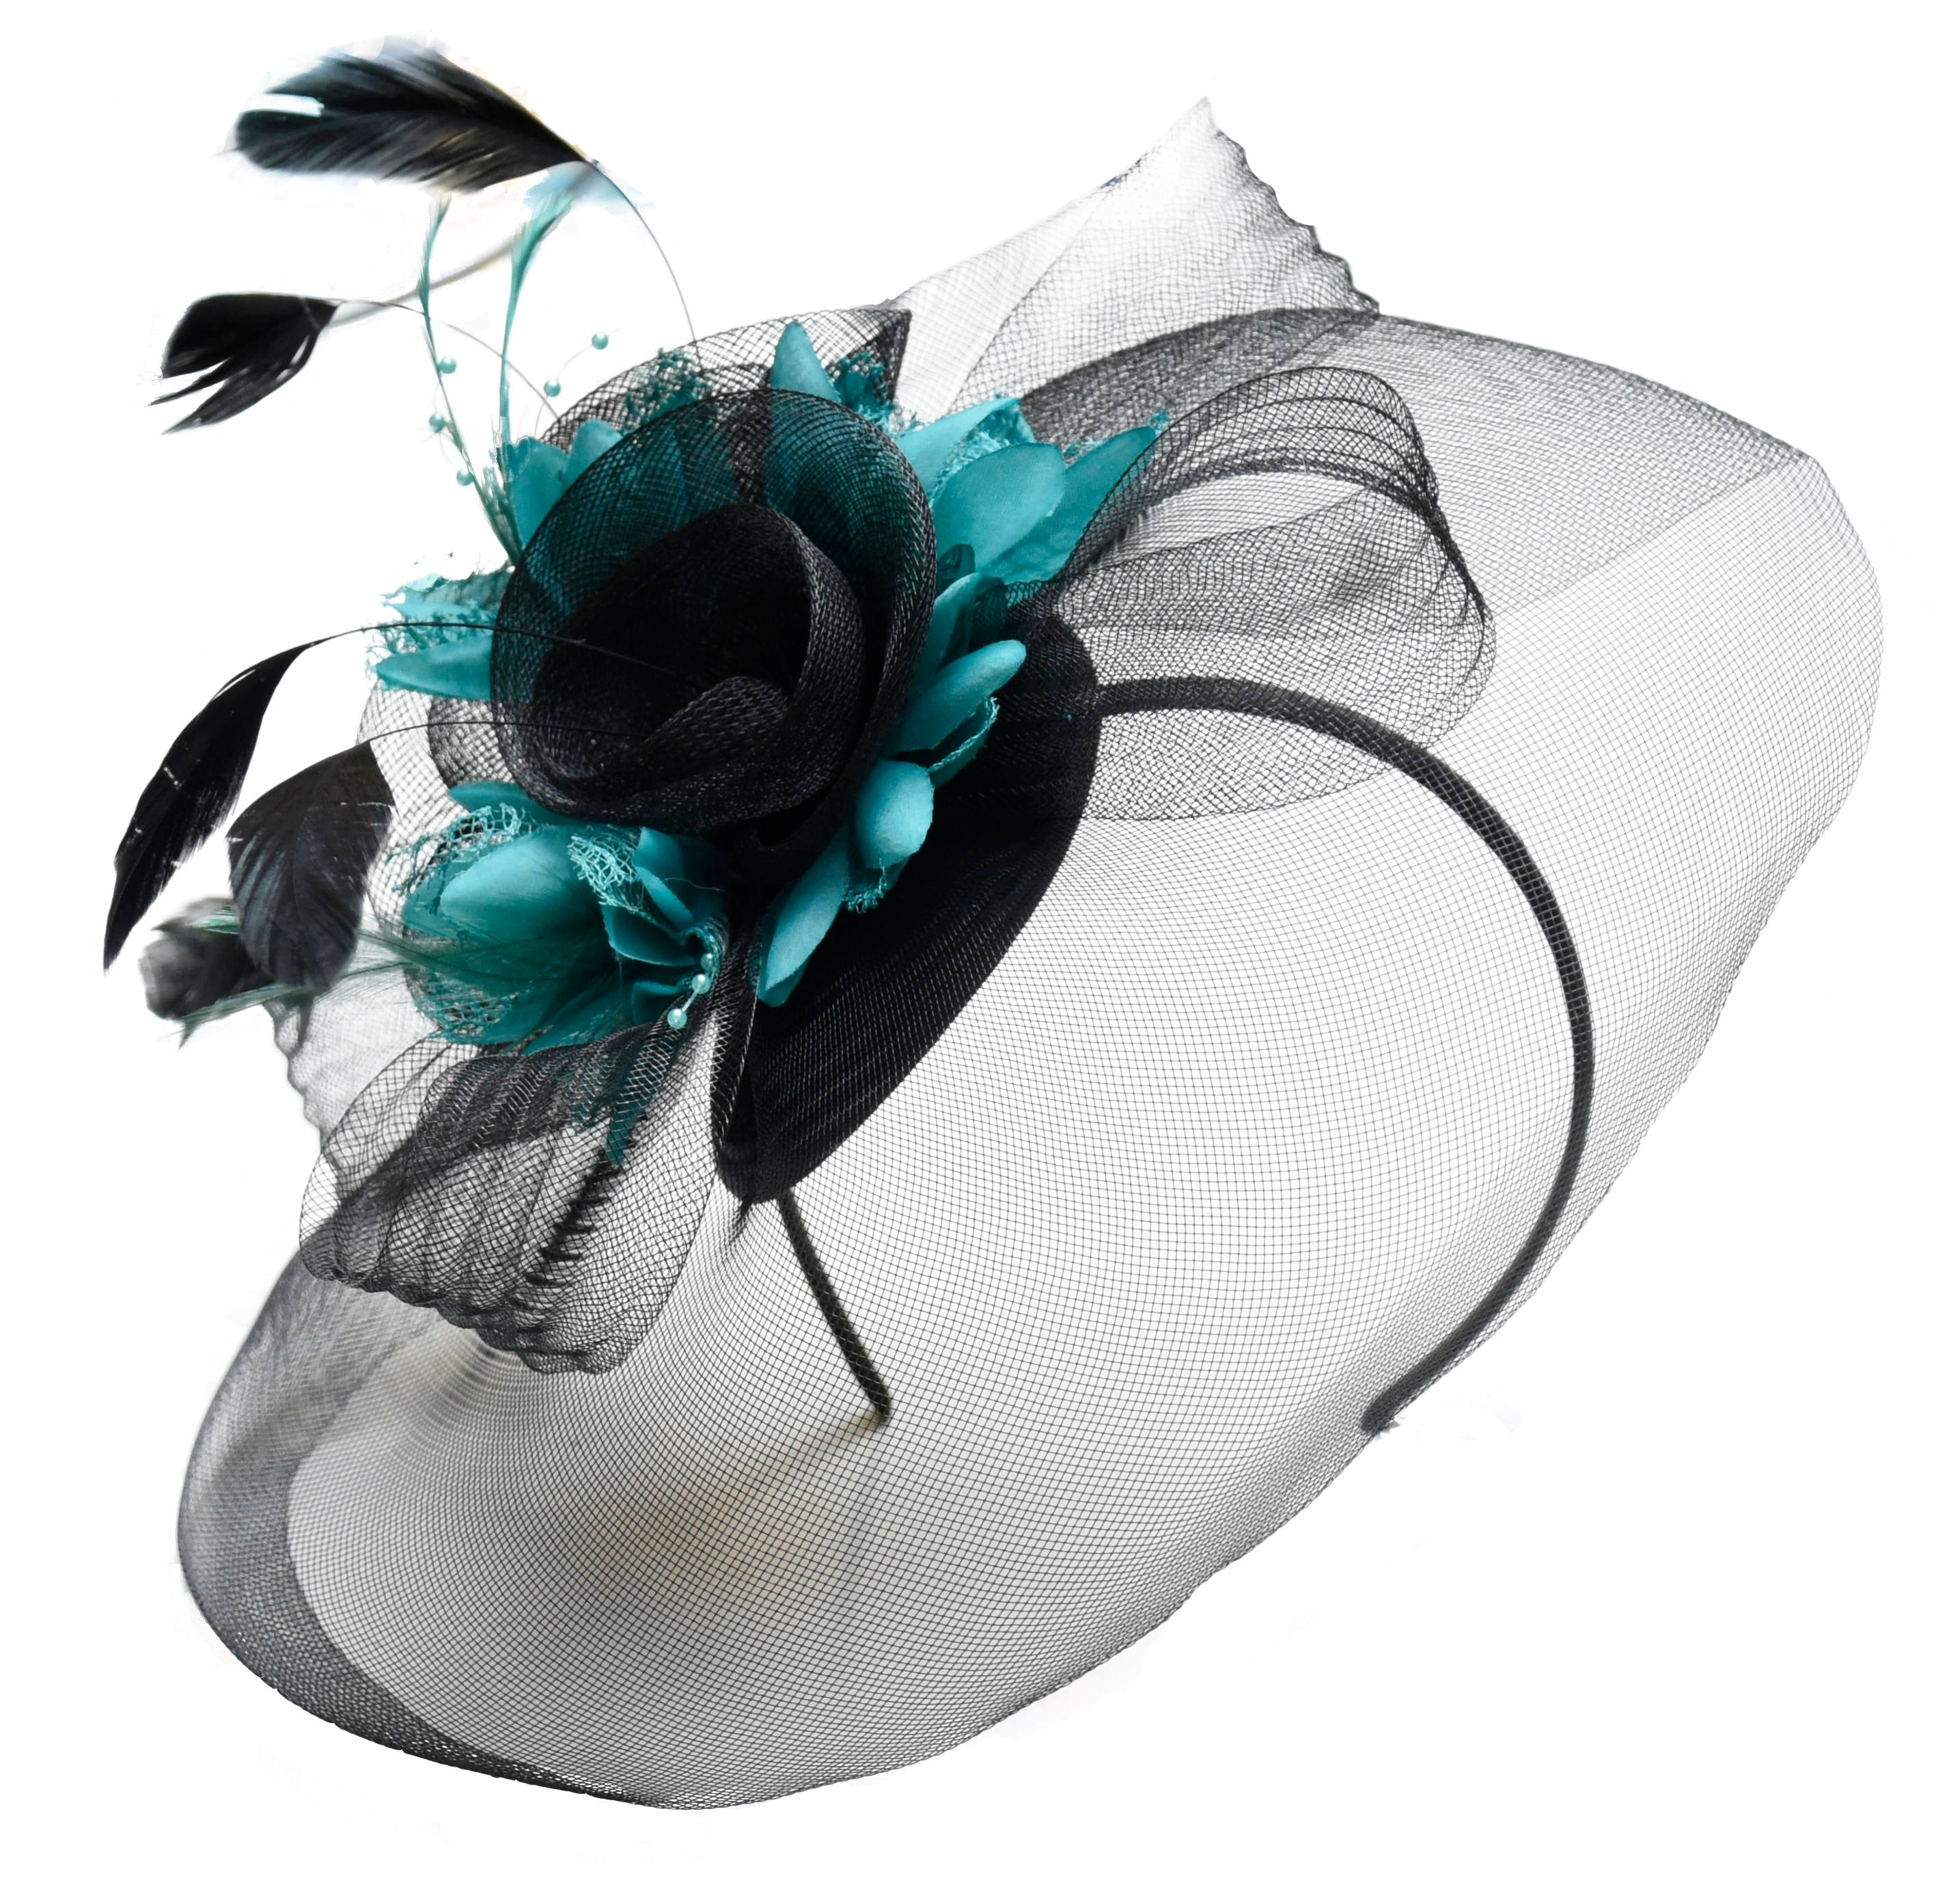 Caprilite Big Black and Turquoise Fascinator Hat Veil Net Hair Clip Ascot Derby Races Wedding Headband Feather Flower